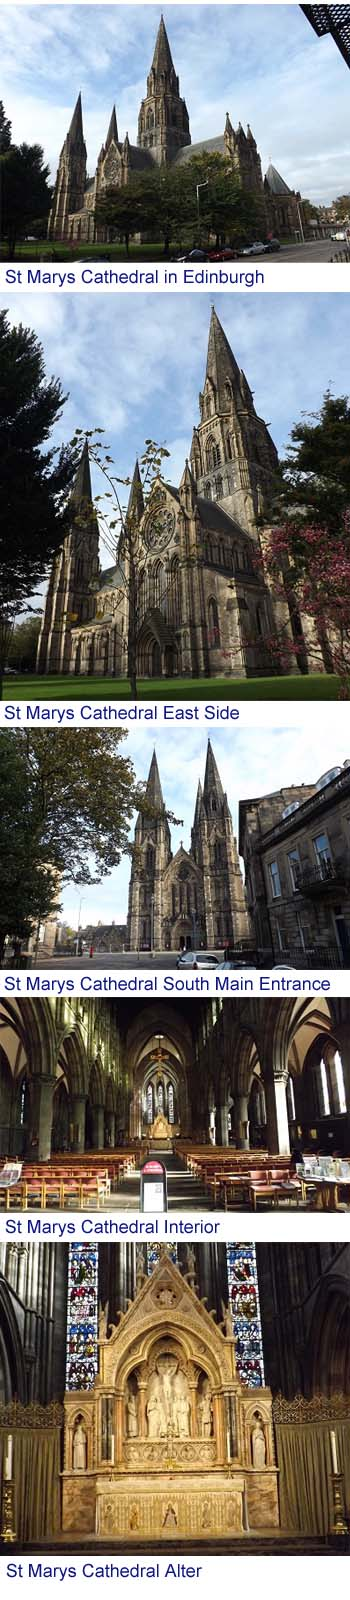 St Marys Cathedral Edinburgh Images